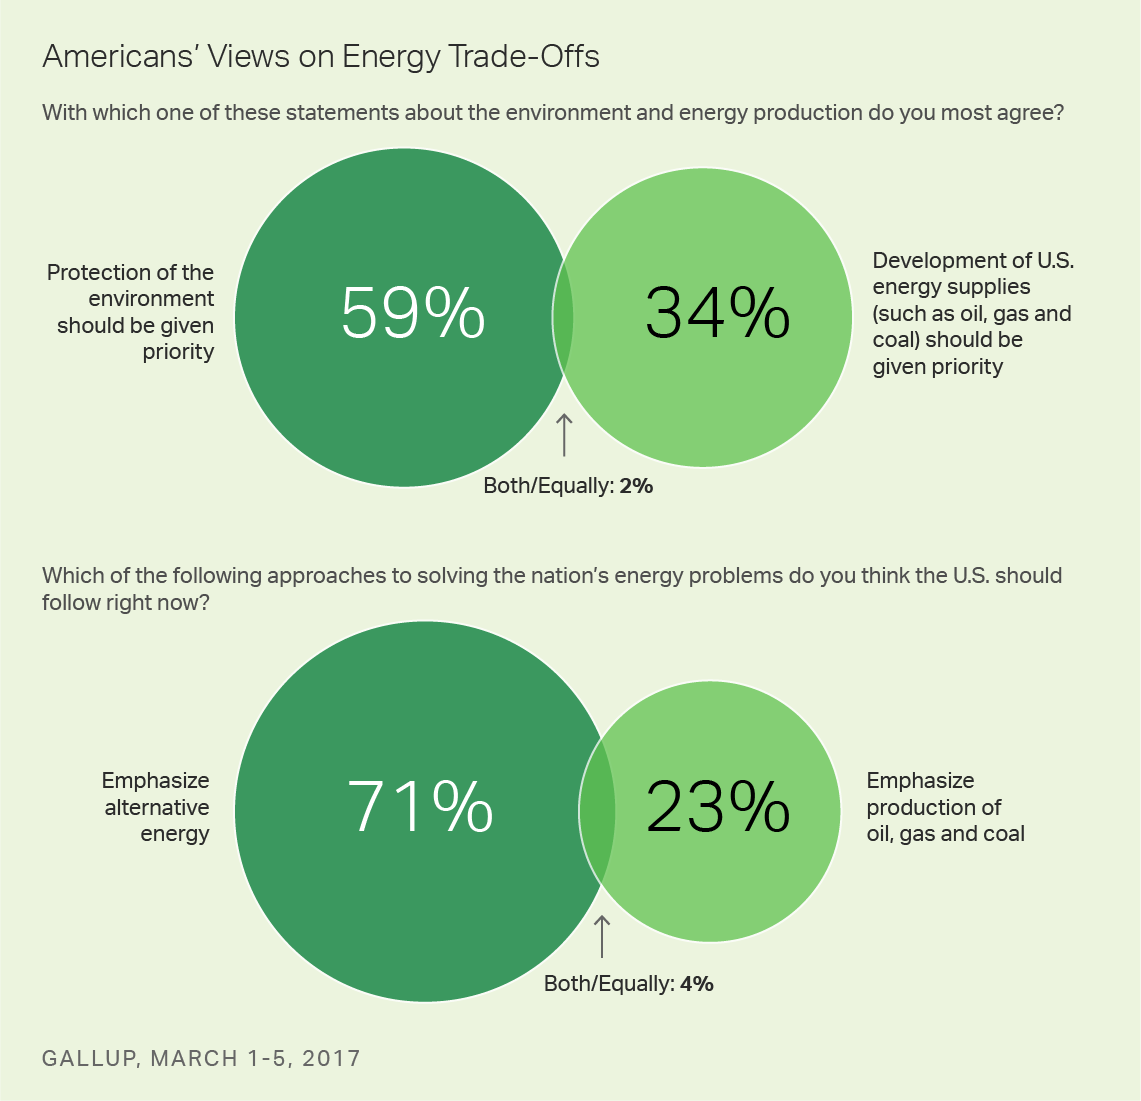 Americans' Views on Energy Trade-Offs